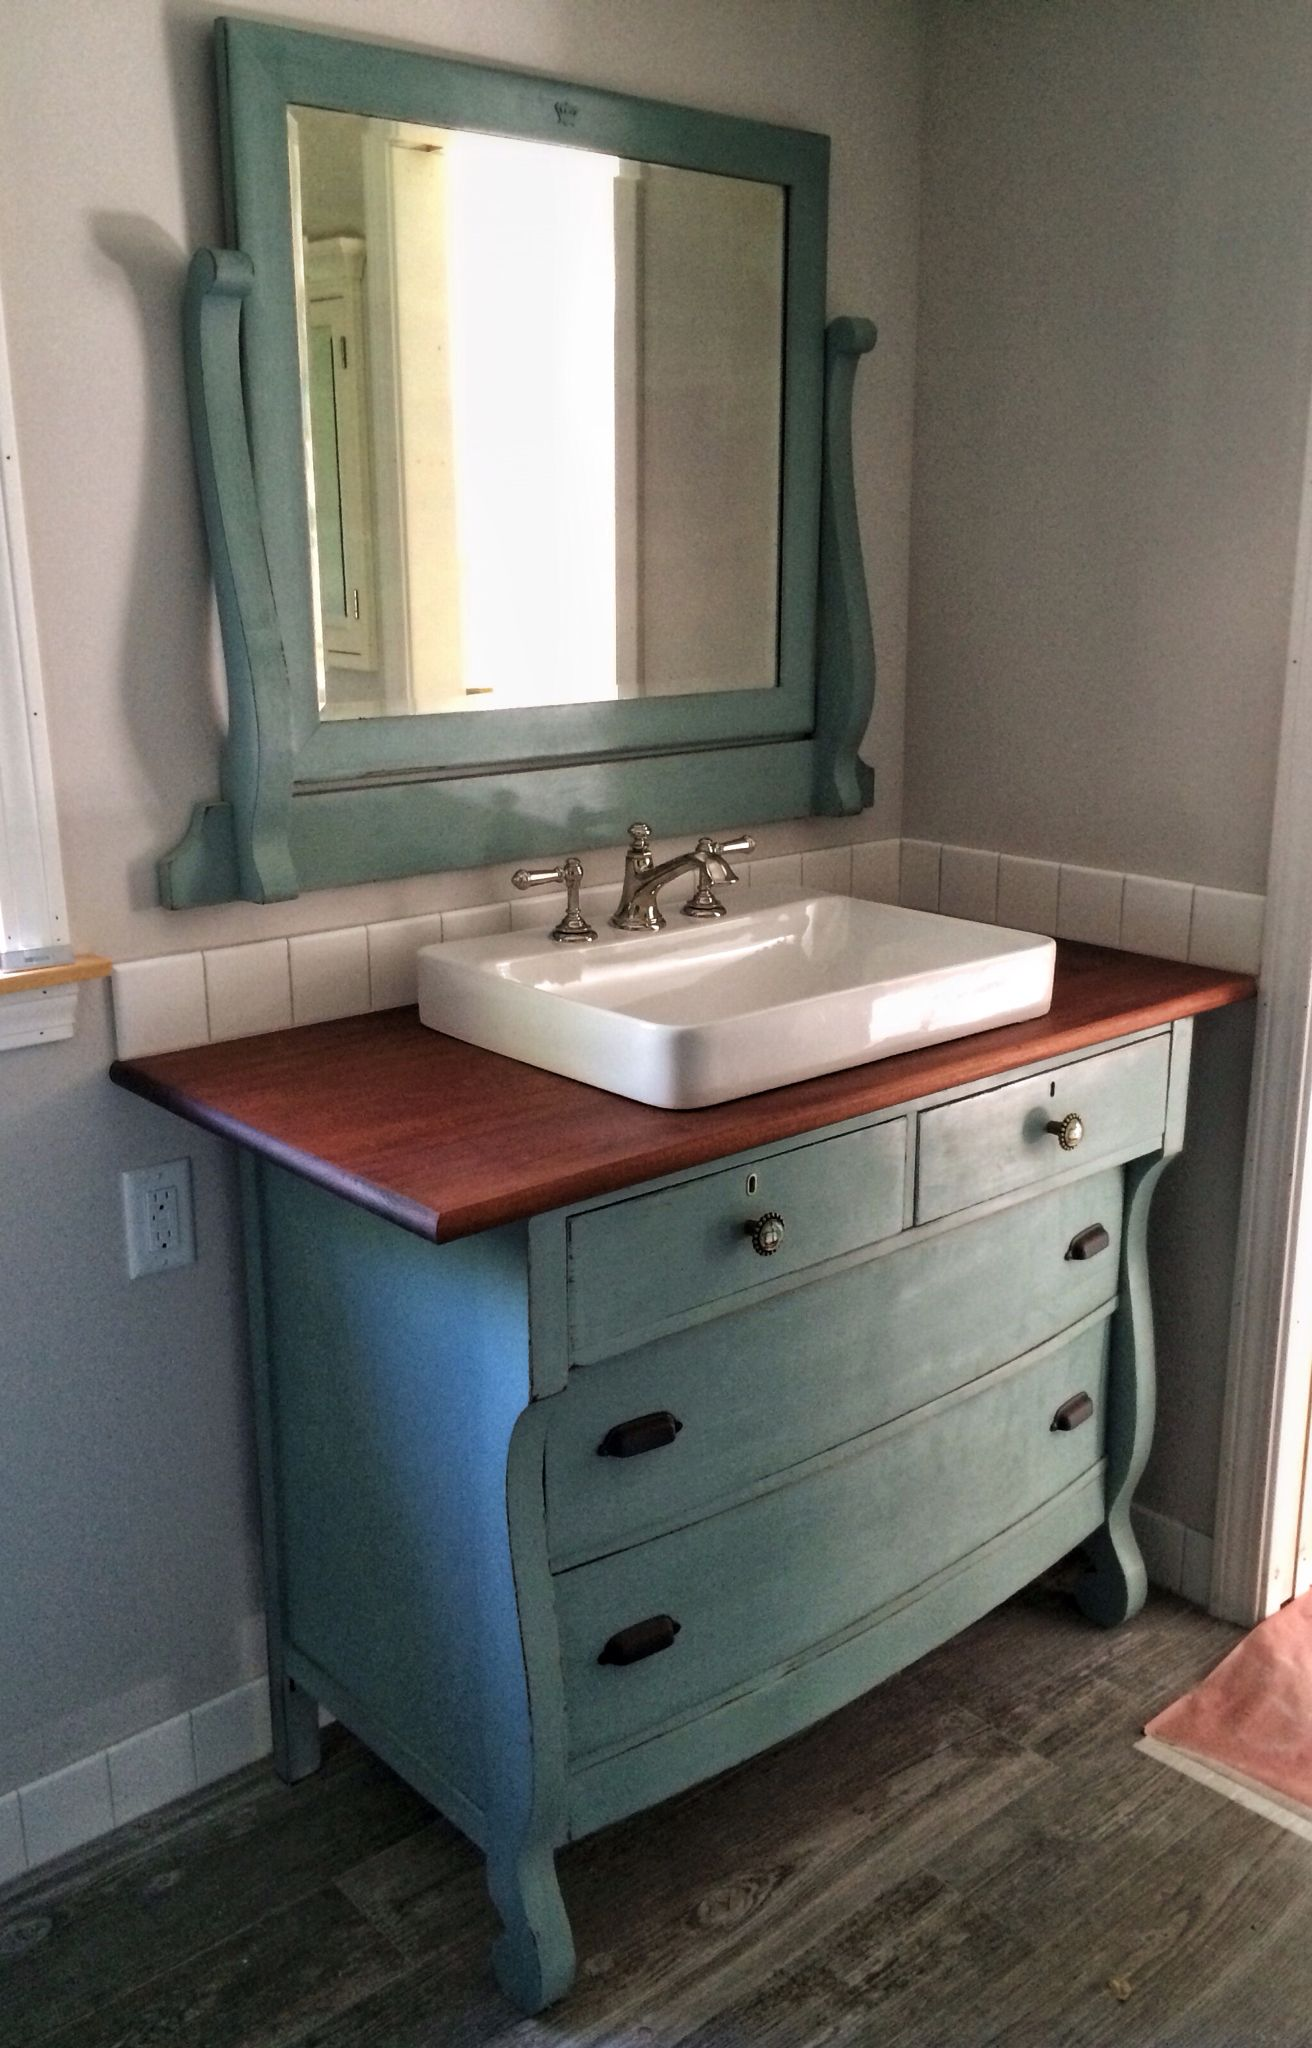 Delicieux I Just Repurposed An Old Dresser To Use As A Vanity In Our New Bathroom. I  Chalk Painted It Using Annie Sloanu0027s Duck Egg Blue And Finished It With 2  Coats ...